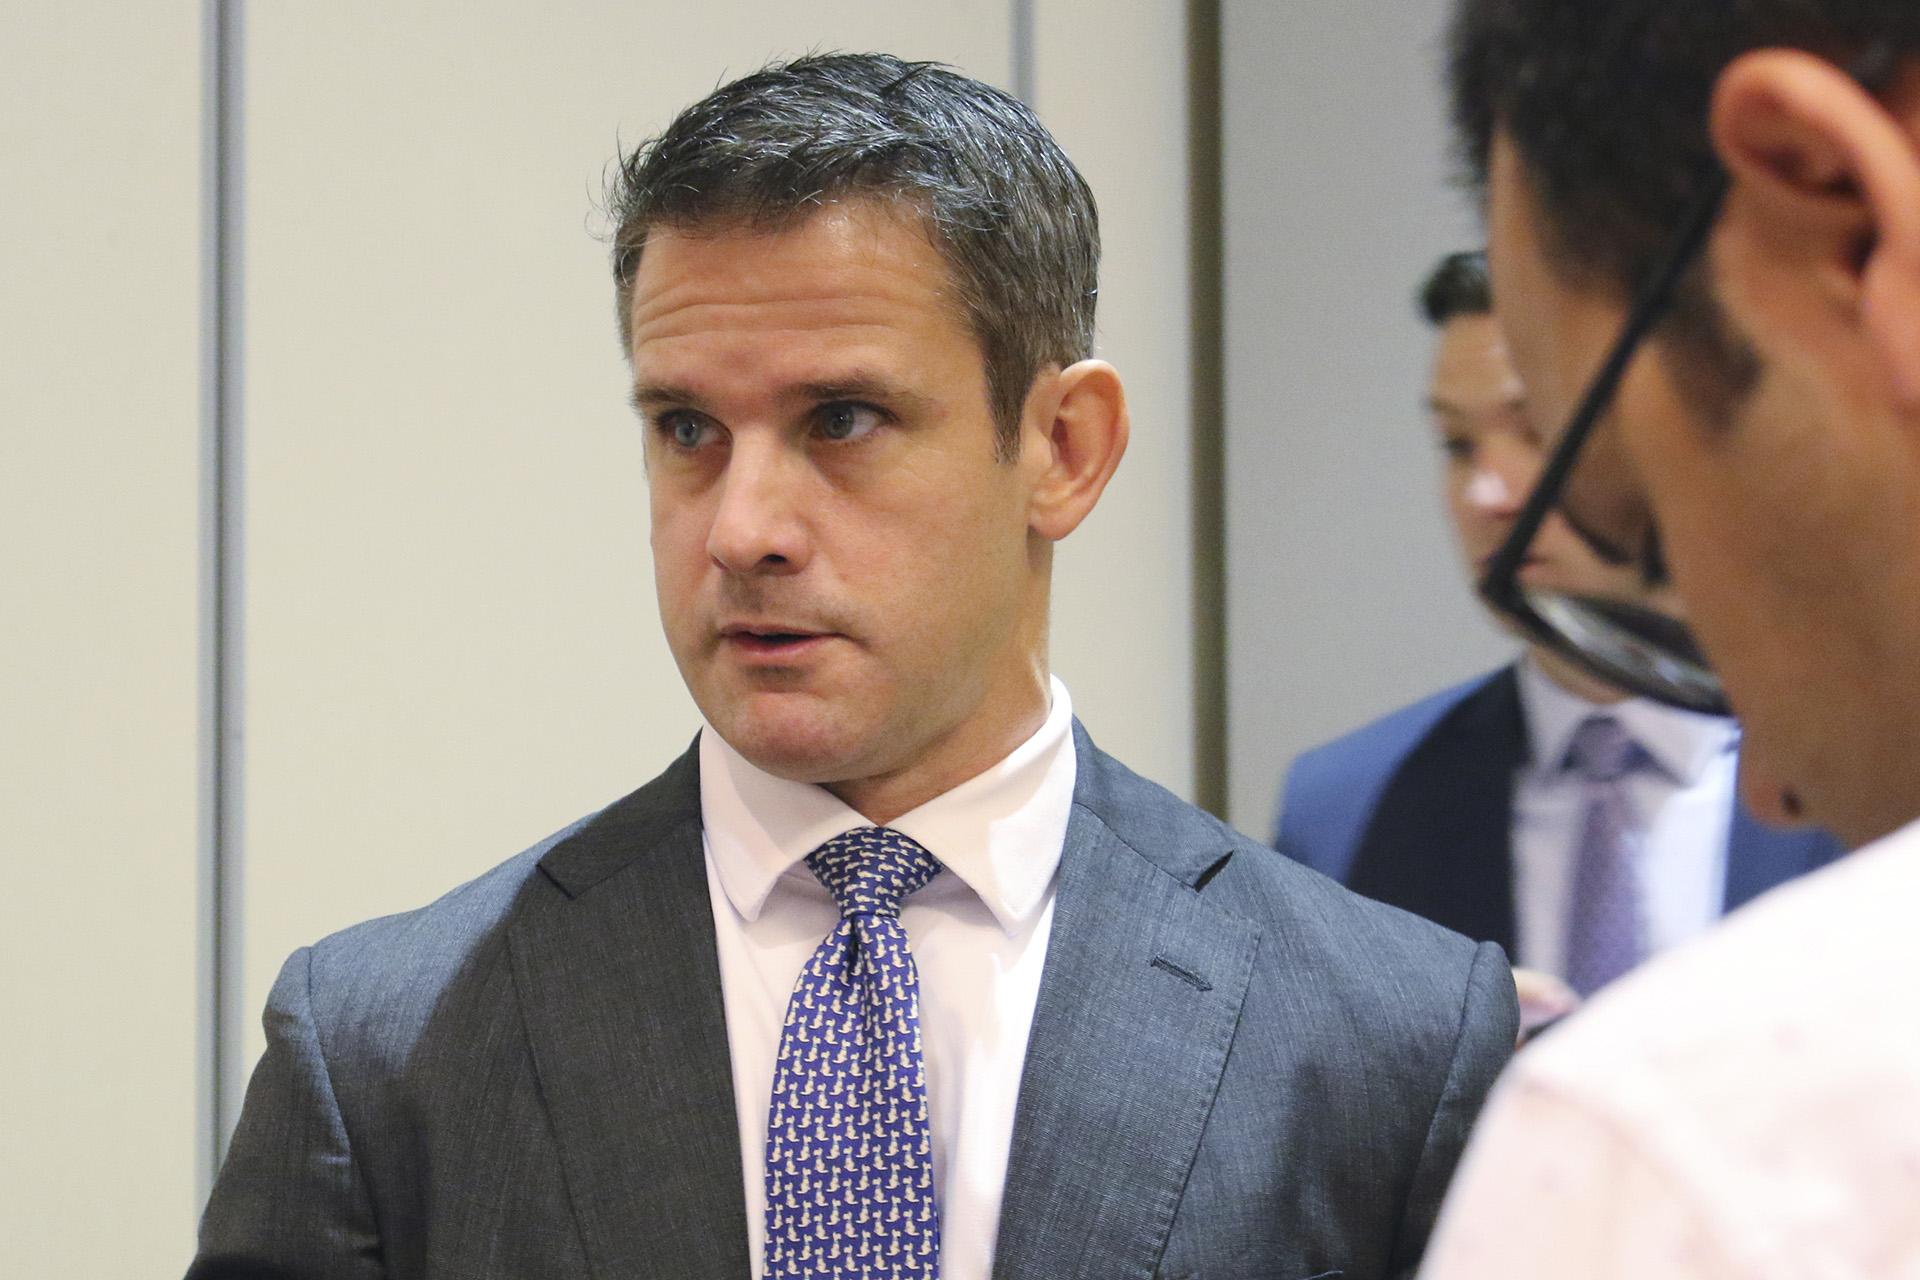 Rep. Adam Kinzinger R-Ill., speaks to reporters after attending an event Thursday, Oct. 3, 2019, in Chicago. (AP Photo / Noreen Nasir)